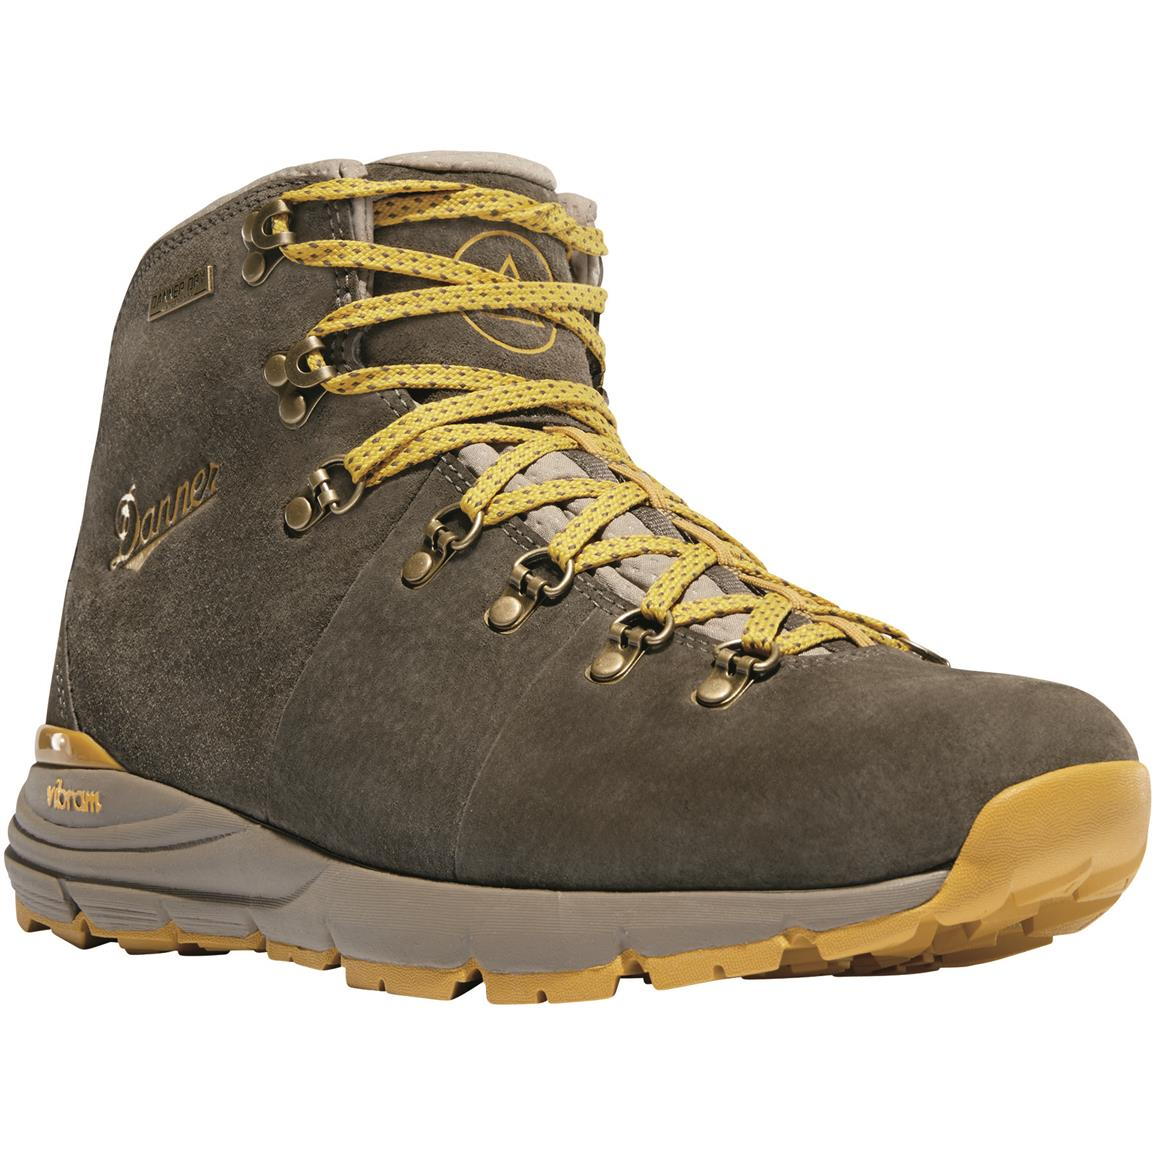 "Danner Mountain 600 4.5"" Men's Suede Waterproof Hiking Boots, Hazelwood"